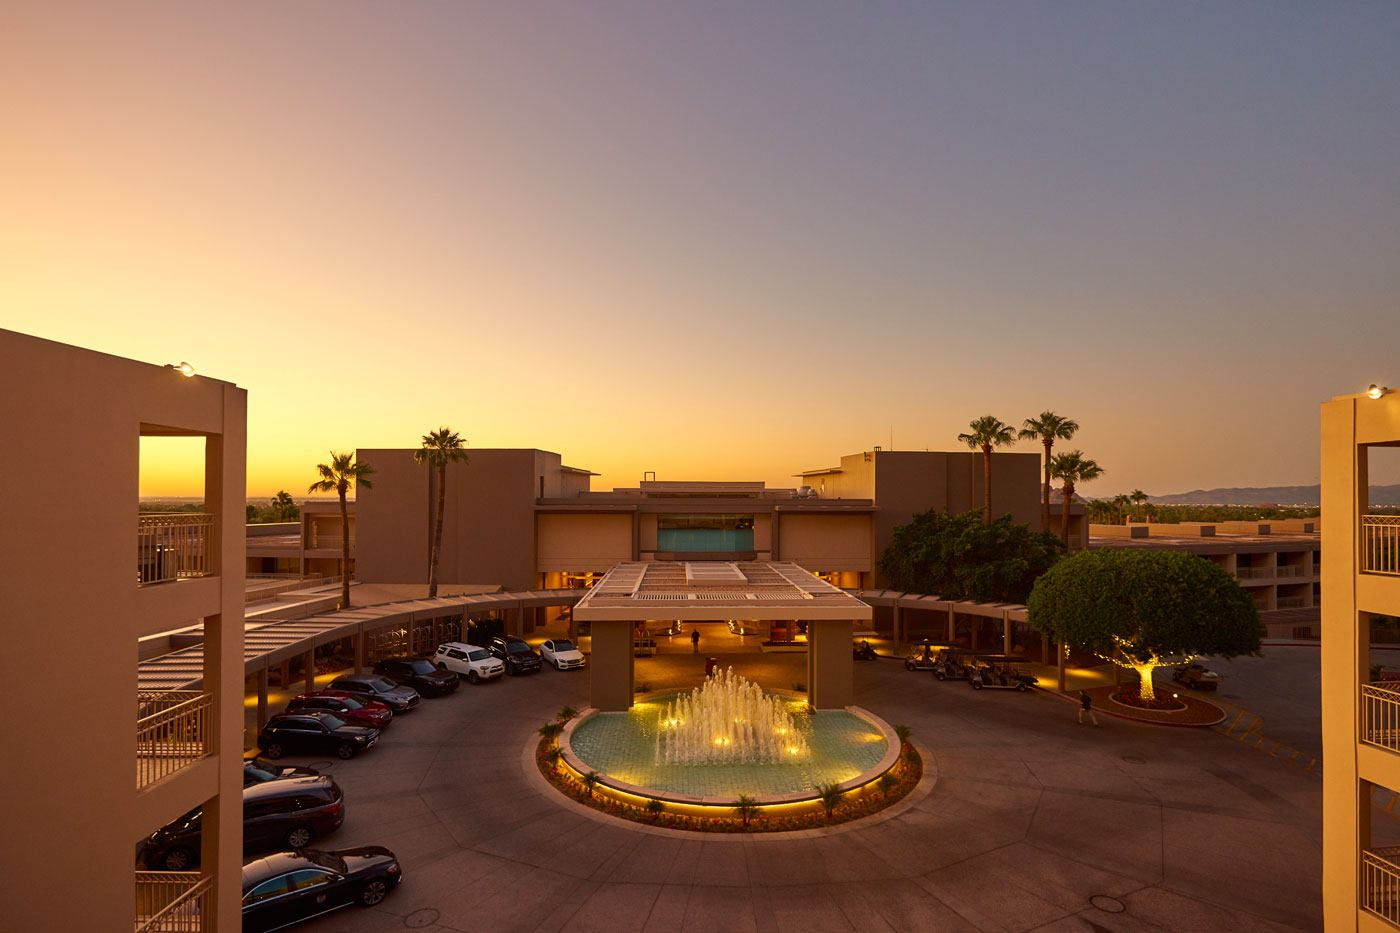 The Phoenician driveway lit from the sunrise